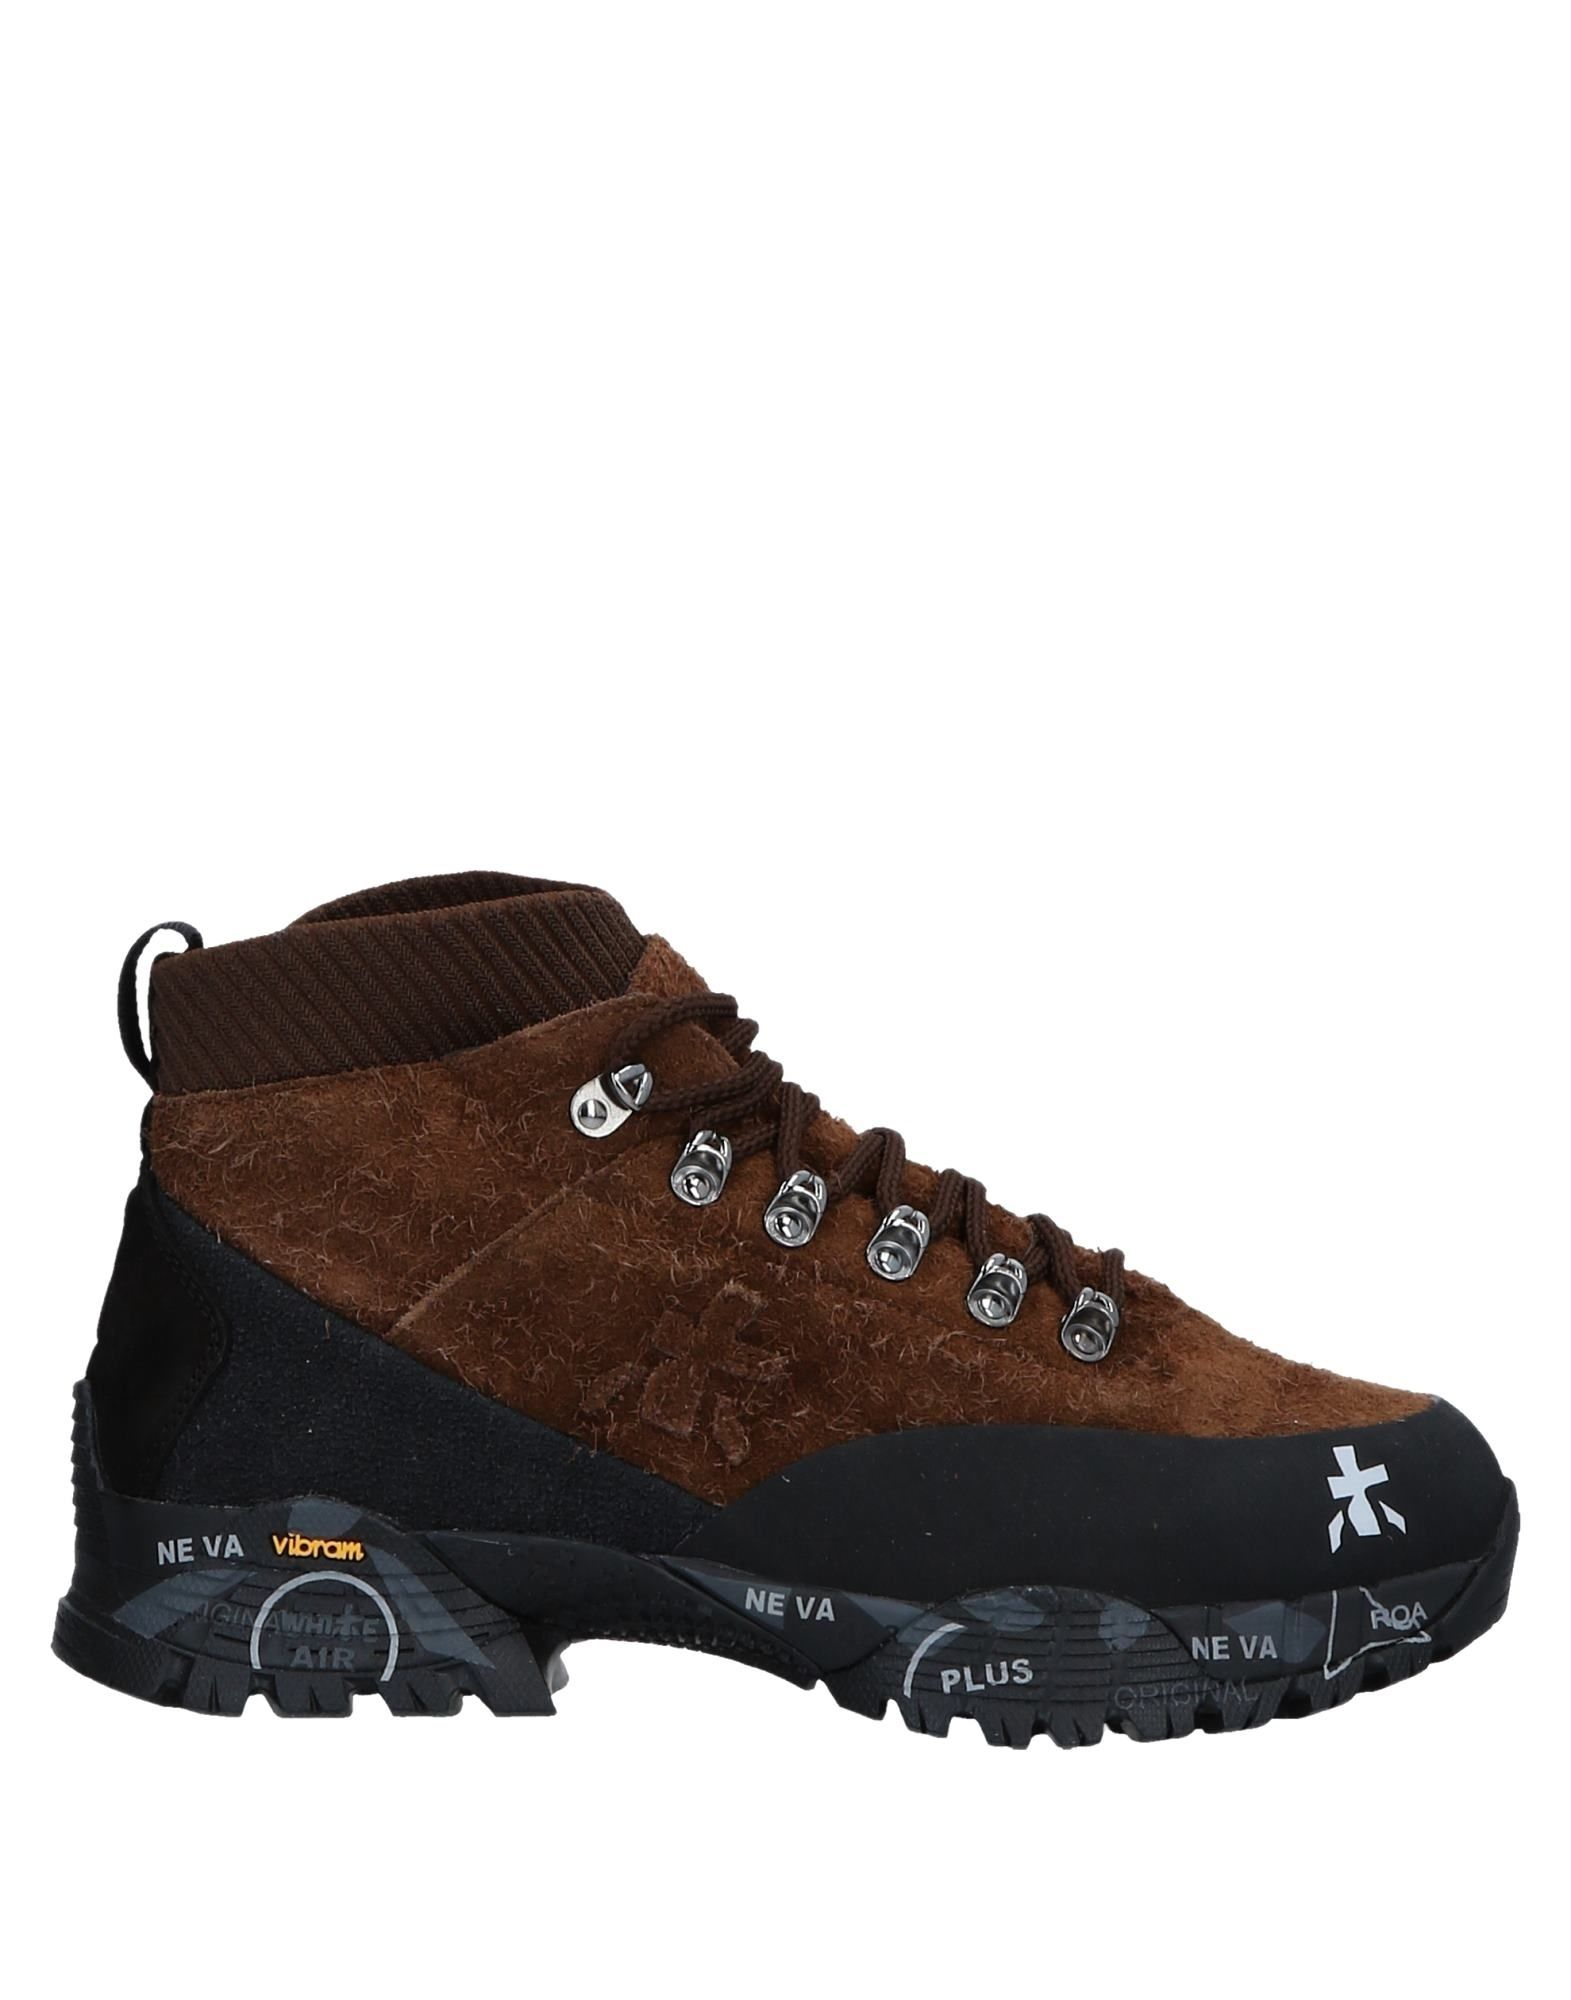 Premiata on Boots - Men Premiata Boots online on Premiata  Canada - 11540719HT ca0f76